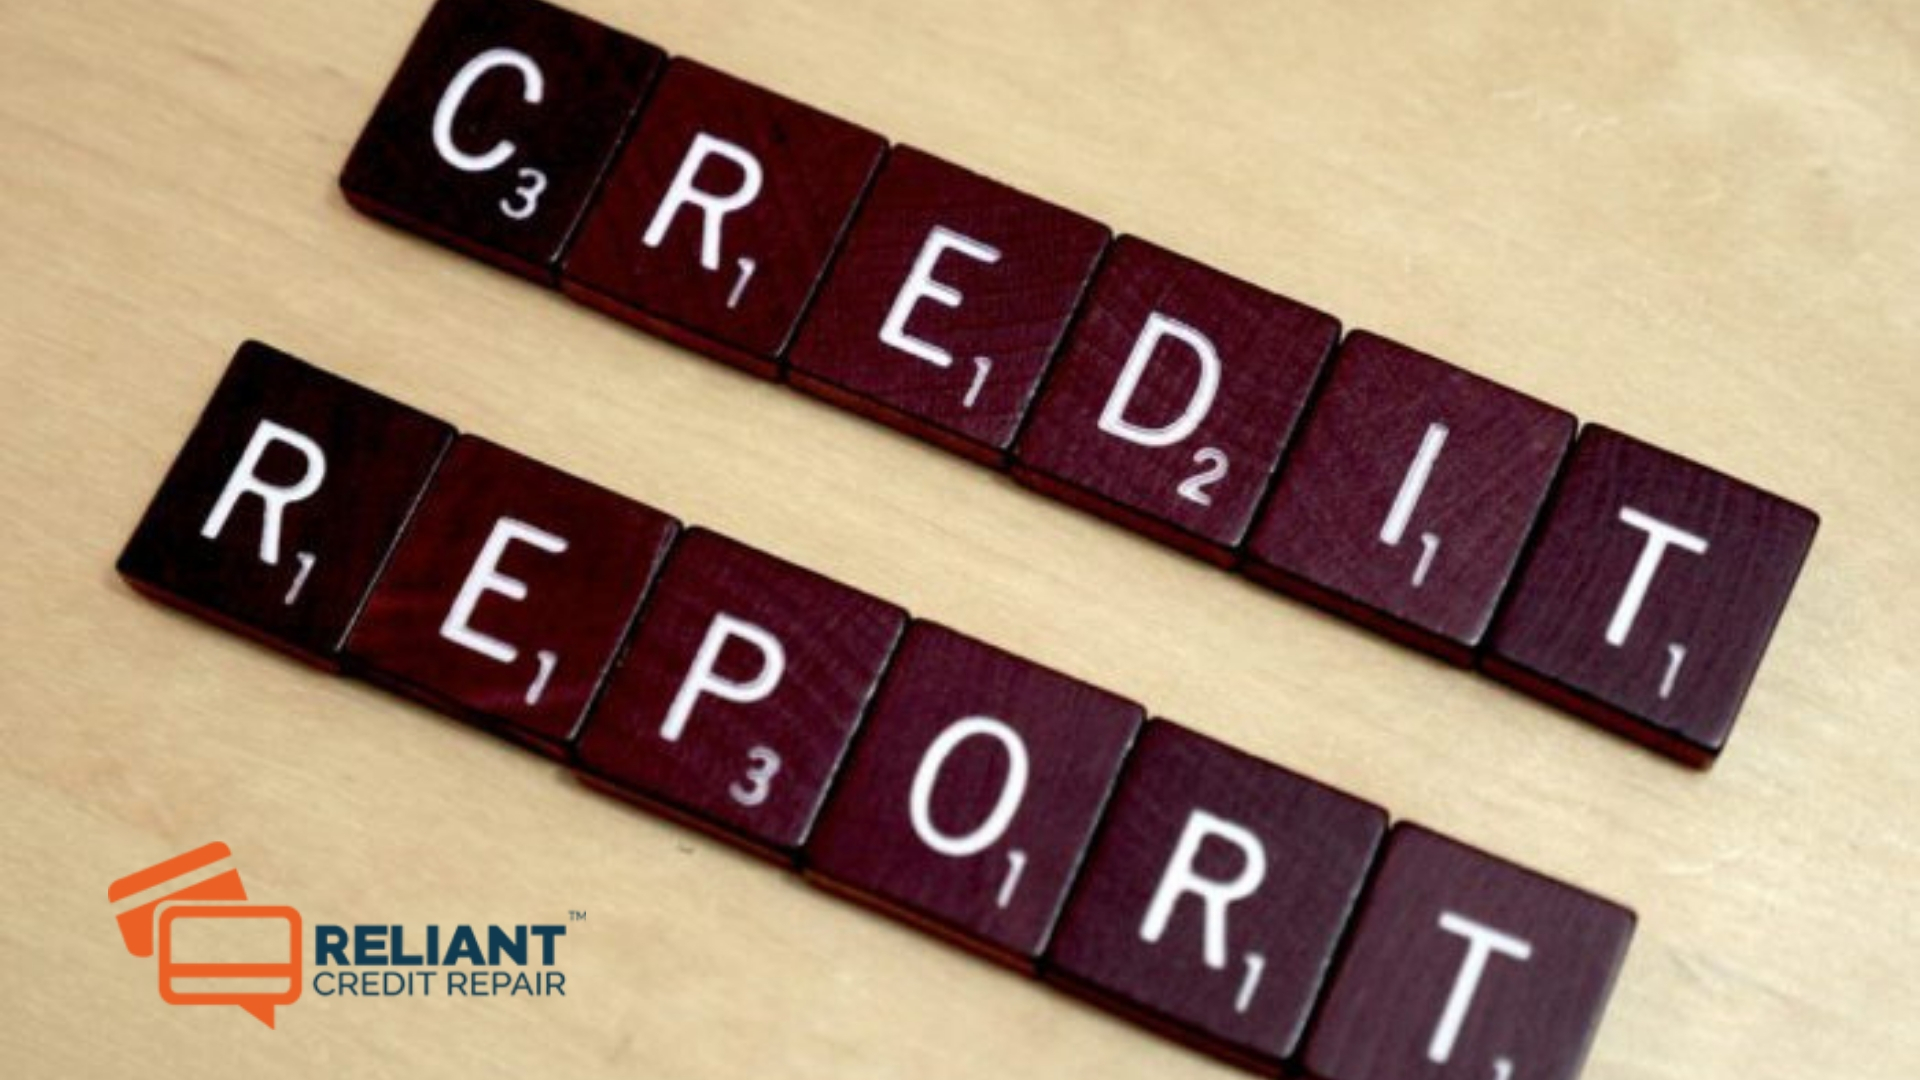 Request Your Free Credit Report and Credit Score